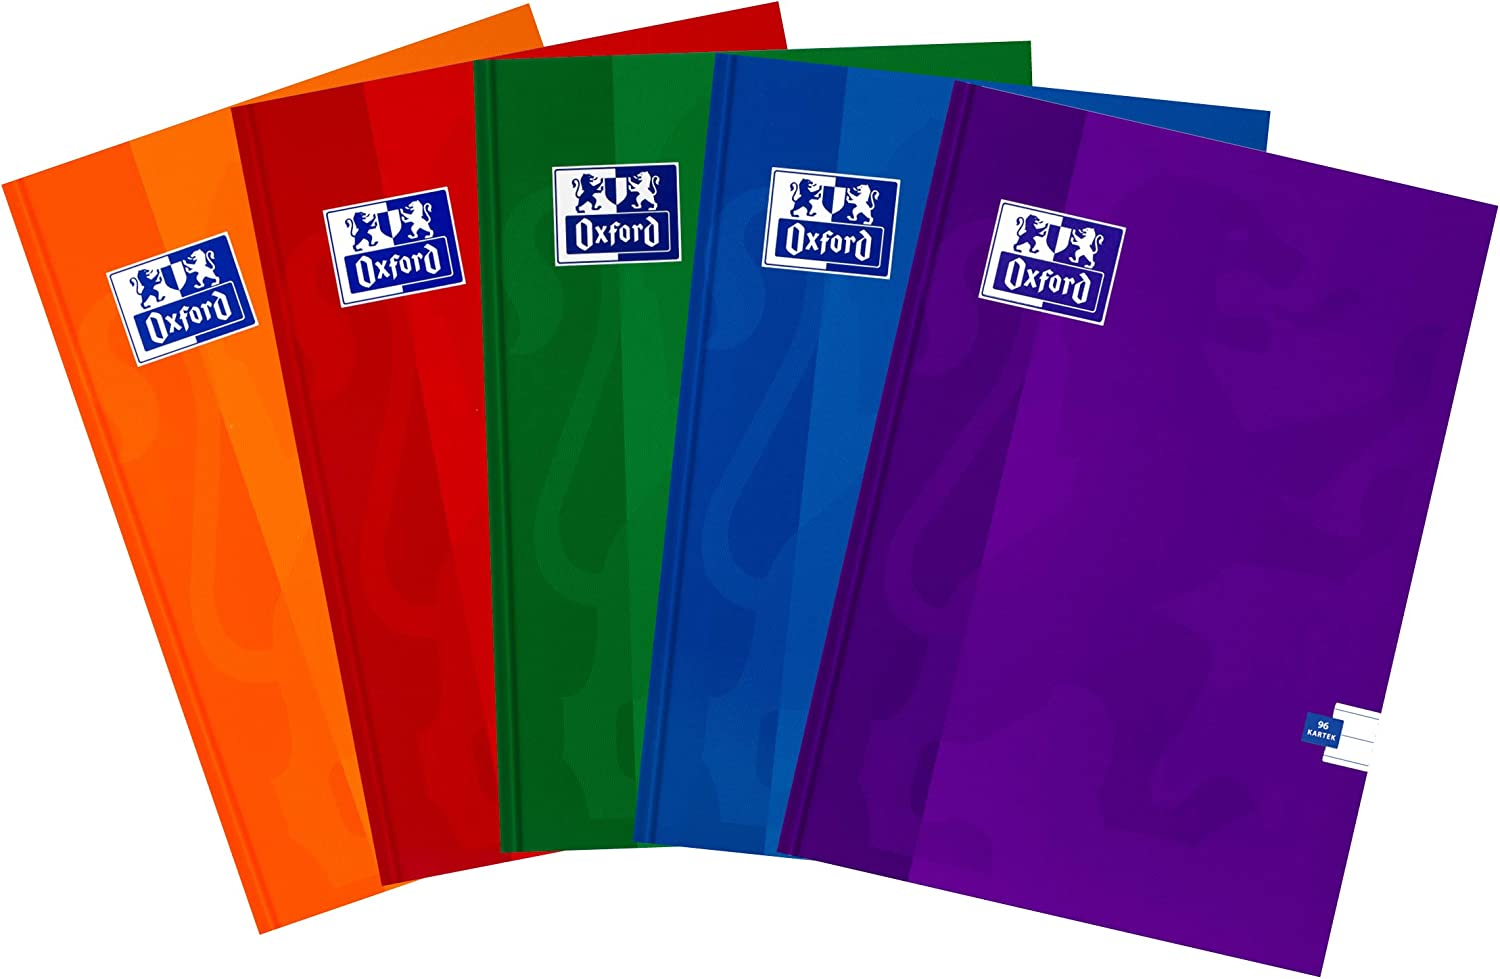 Oxford 400106158 Esse A5 Staple 96 New product Pack Assort 5 Sheets of Lines Recommendation